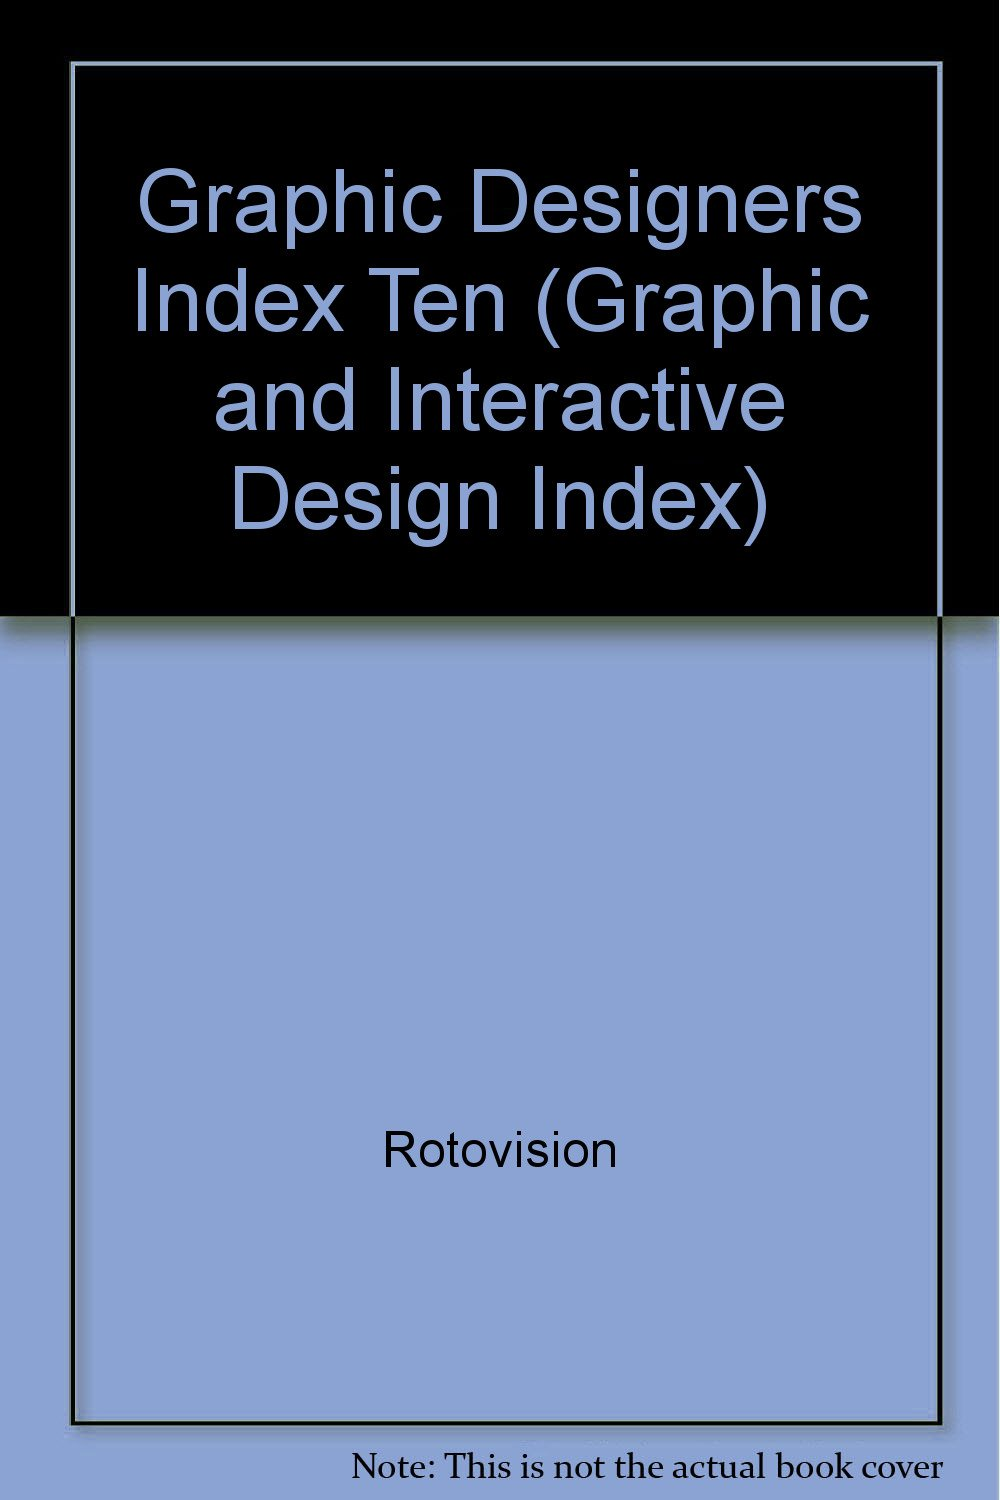 The Graphic Designers' Index 10 (GRAPHIC AND INTERACTIVE DESIGN INDEX)